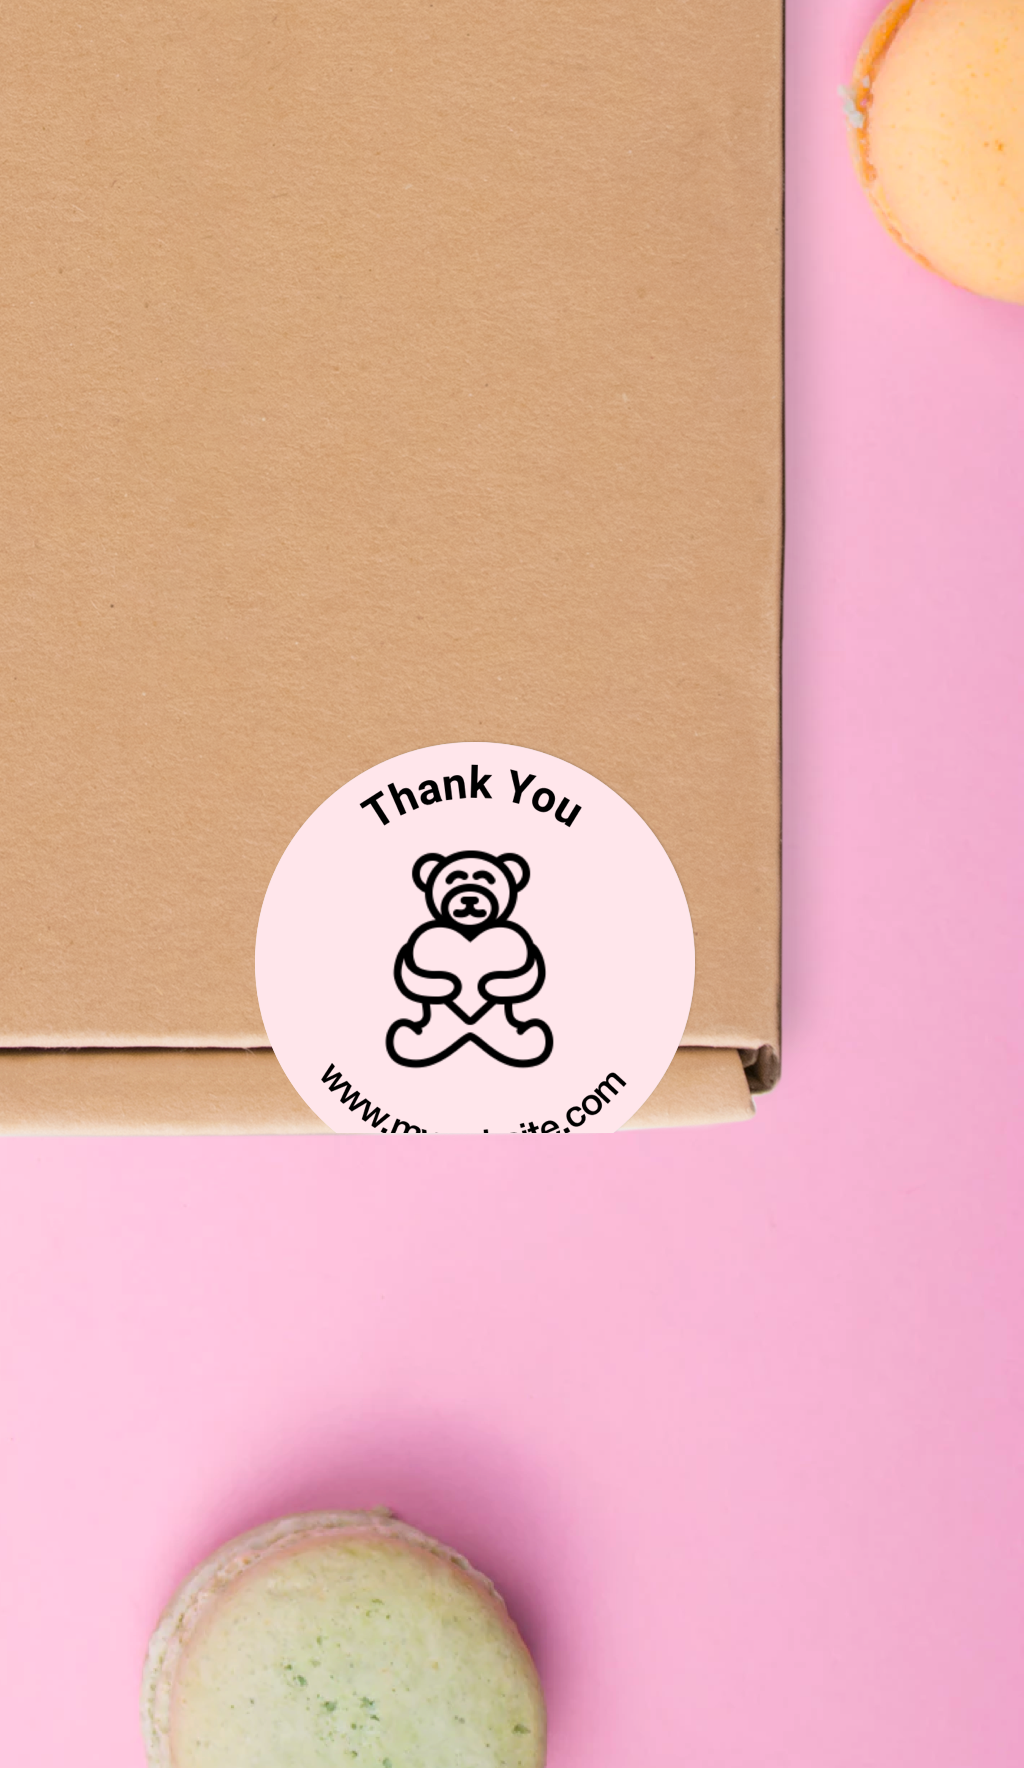 24 CUSTOM Stickers // Glossy Stickers, Design Your Own Stickers